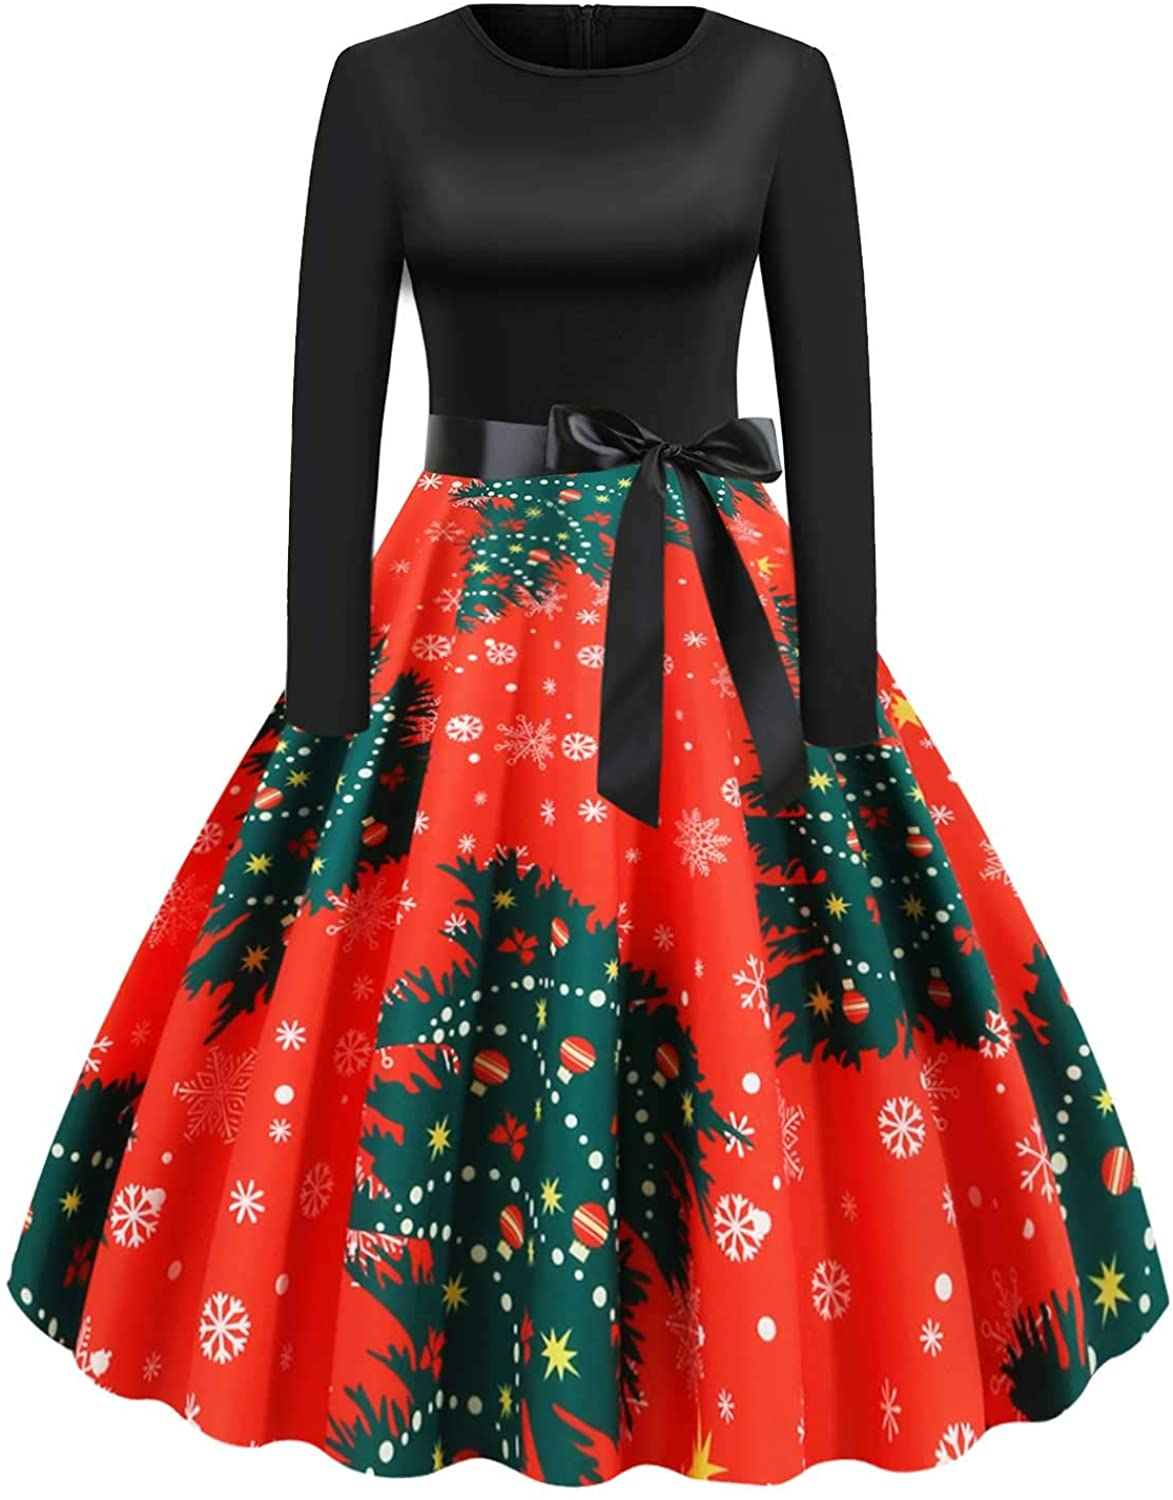 Holiday Cocktail Dress Women Long Sleeve Cute EIK Tree Print Dress A-line Vintage Swing Evening Party Dress Costumes